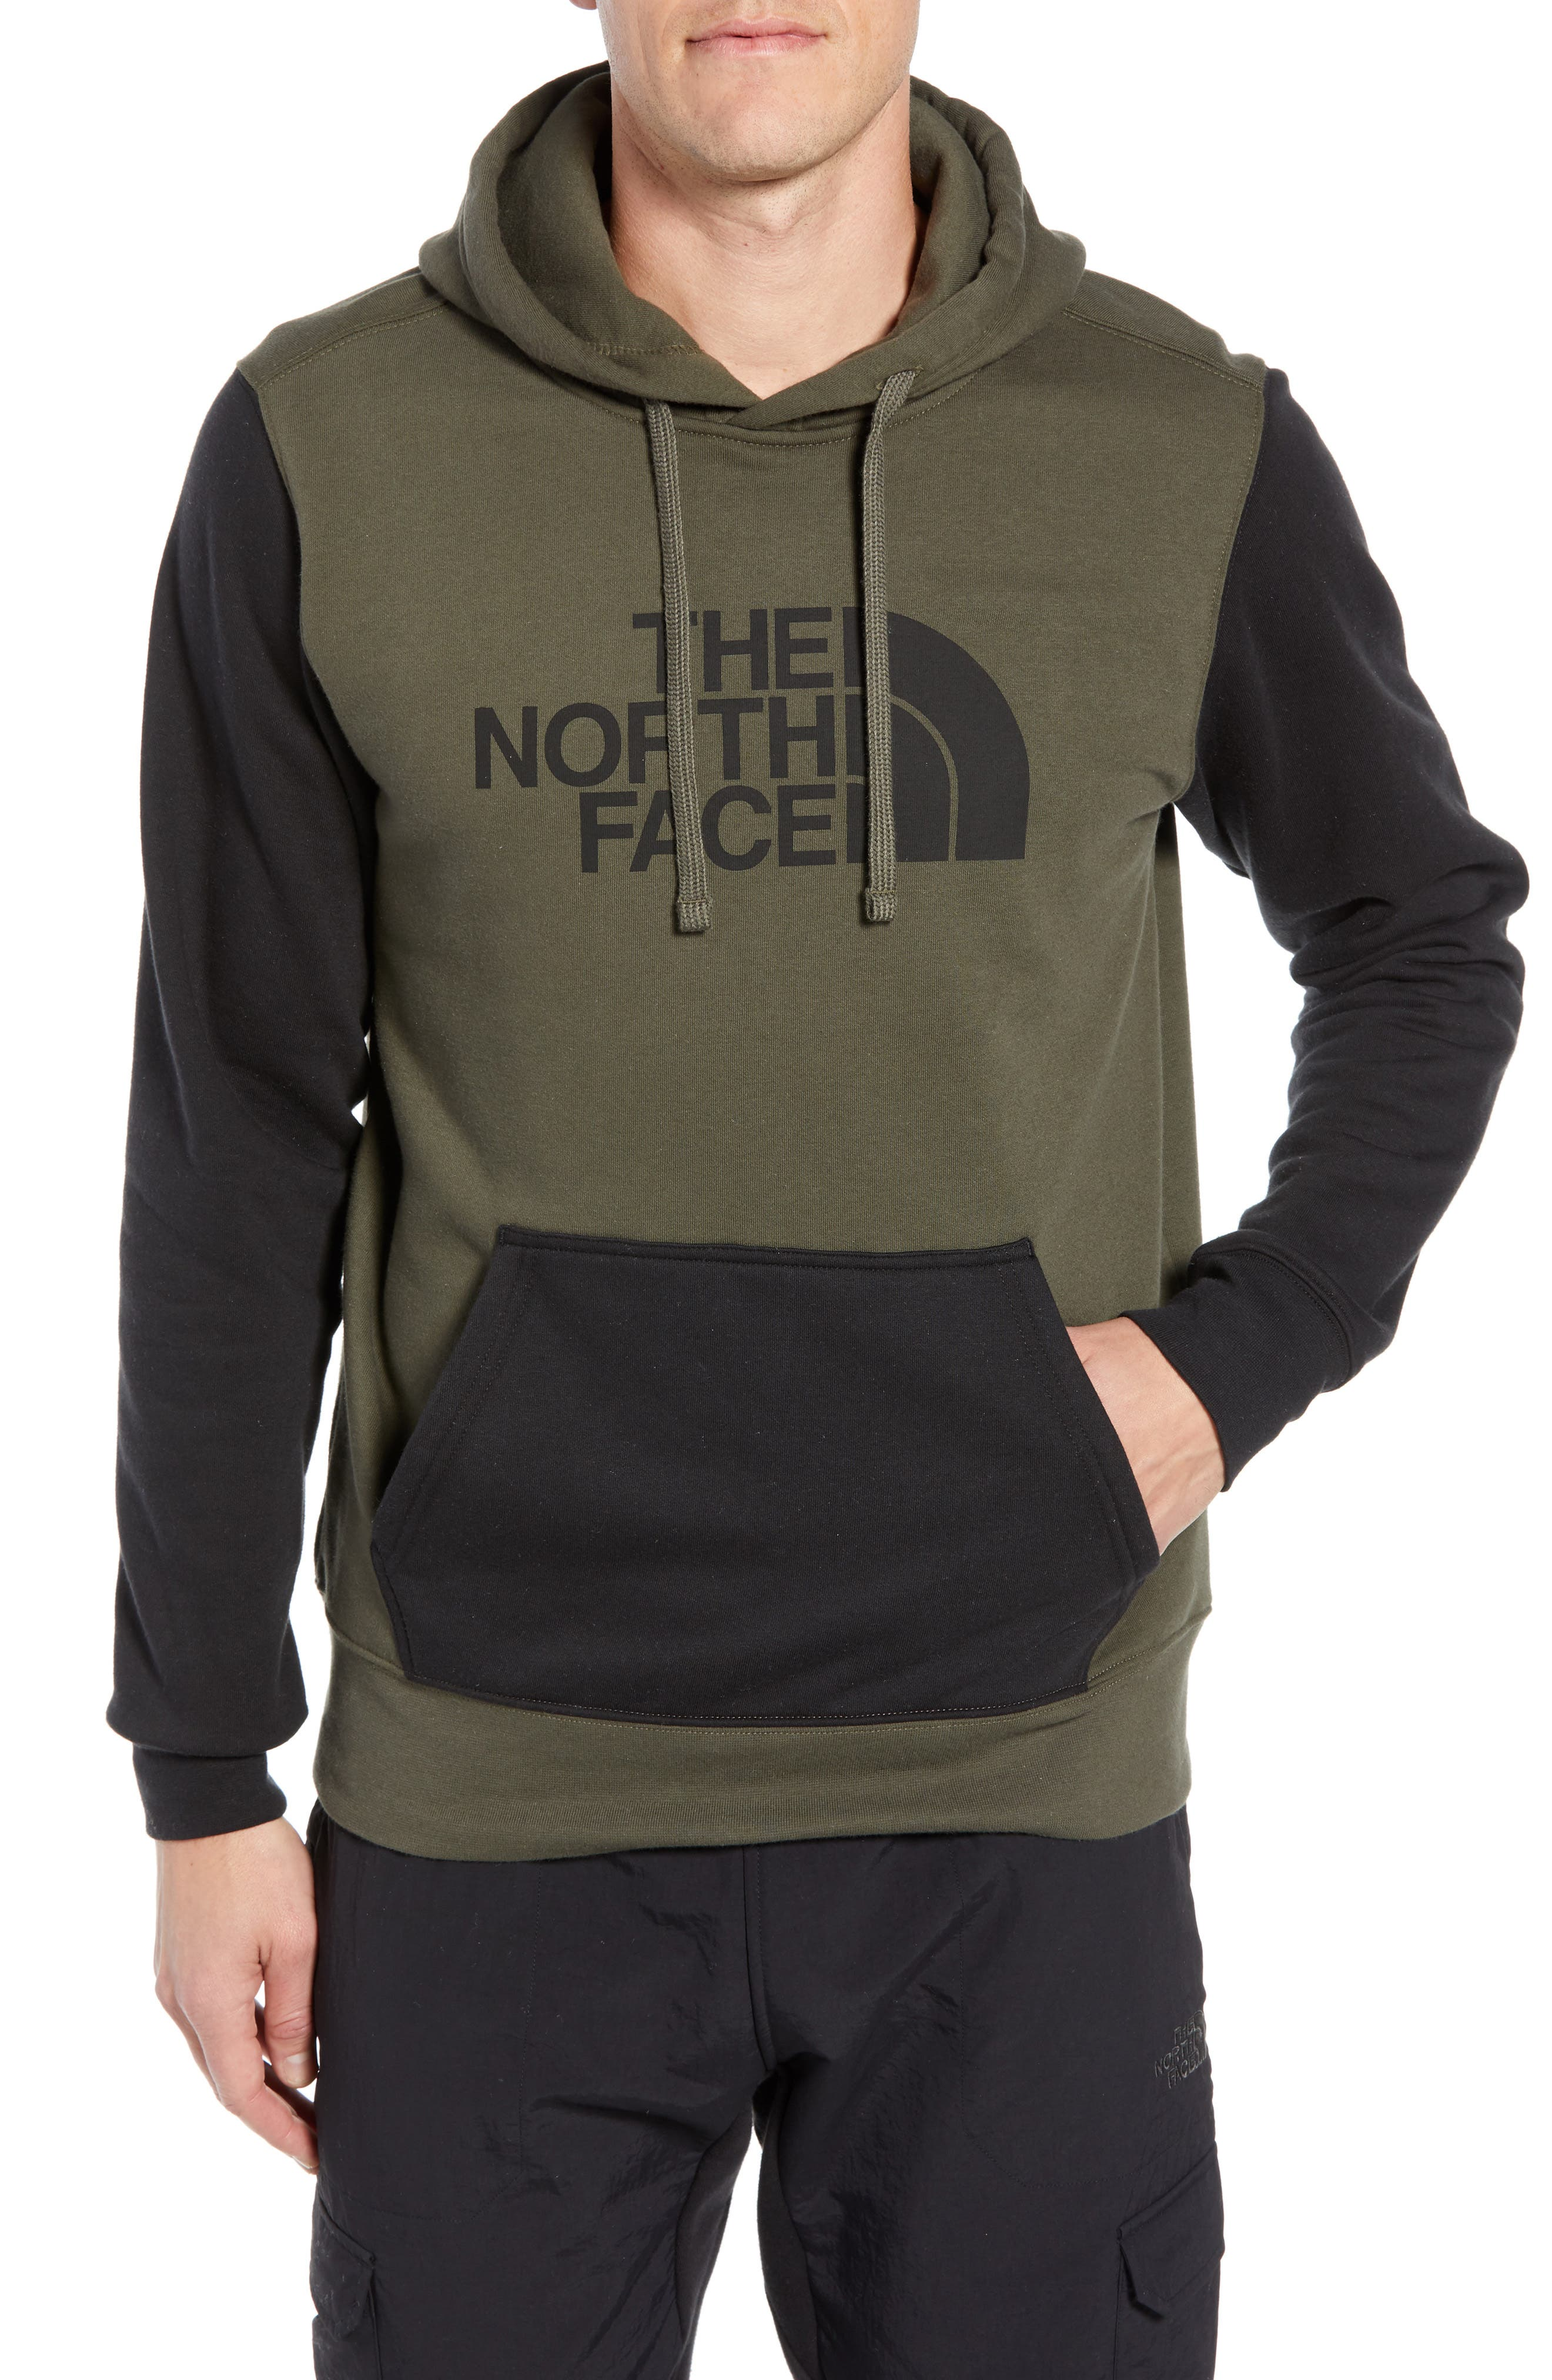 Holiday Half Dome Hooded Pullover,                             Main thumbnail 1, color,                             NEW TAUPE GREEN/ TNF BLACK